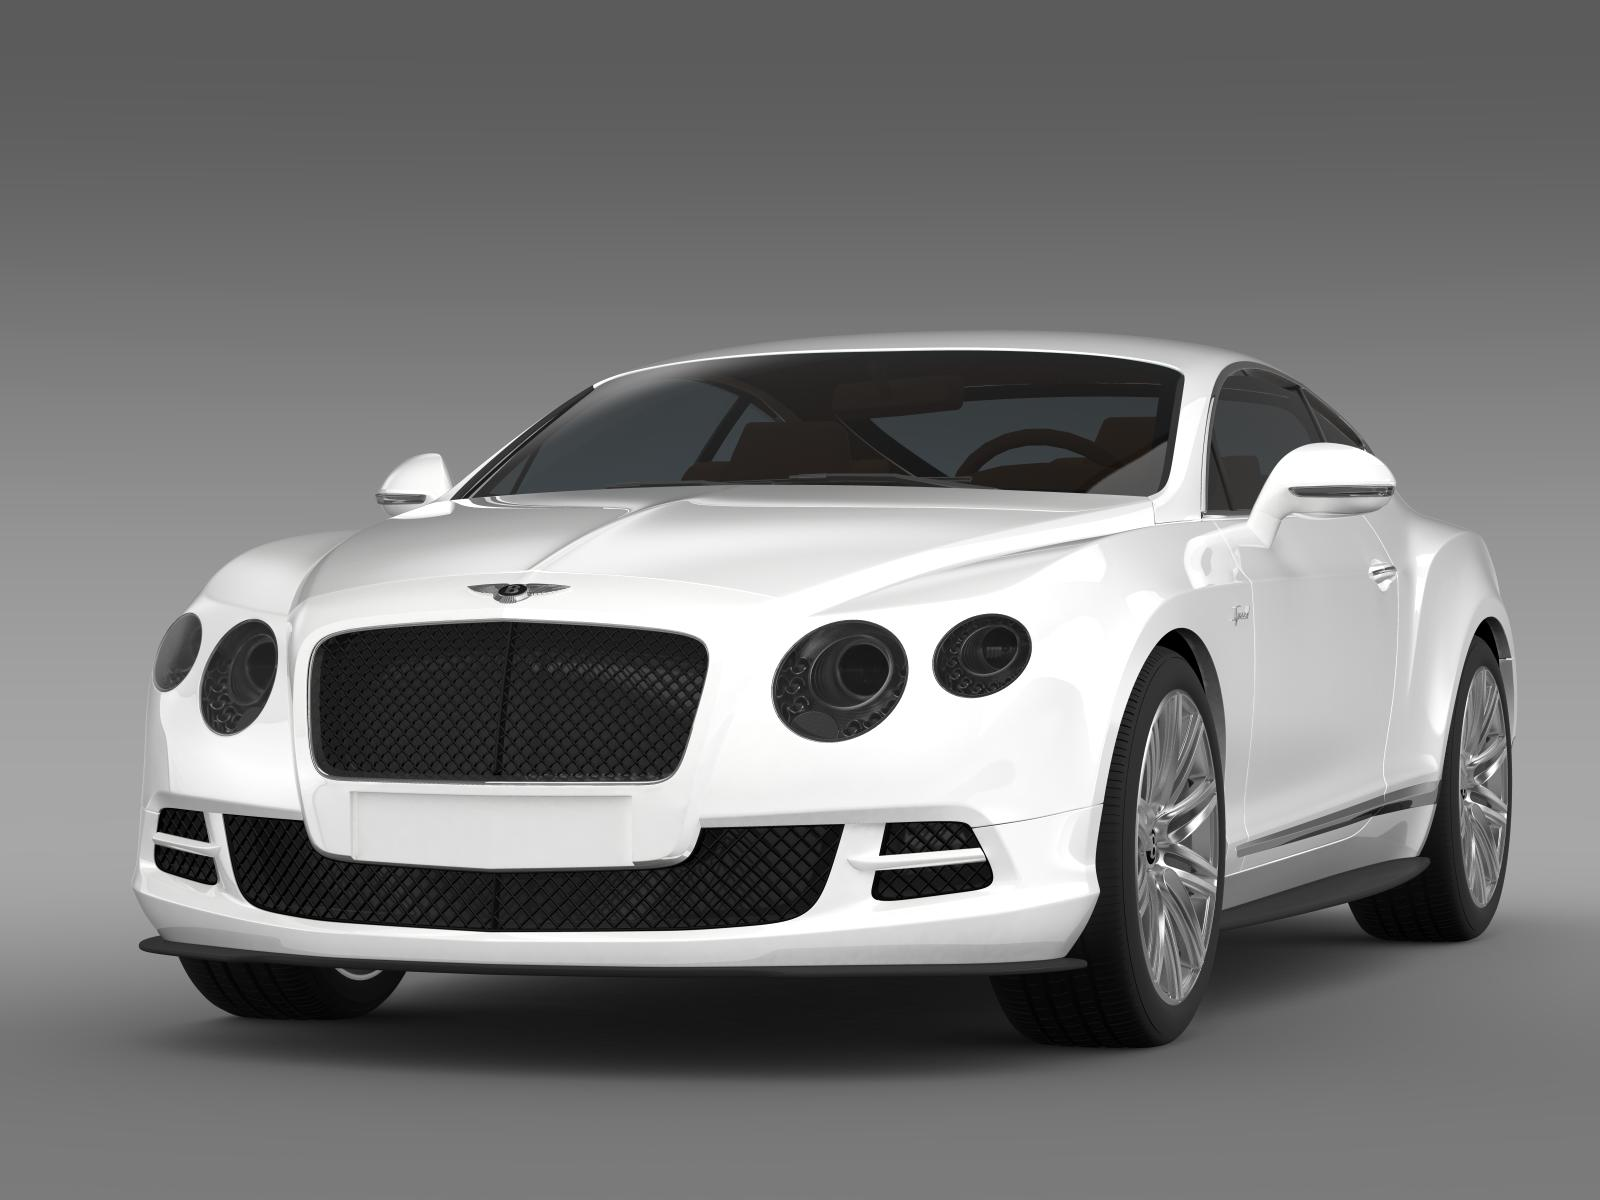 bentley continental gt speed 2014 3d model buy bentley continental gt speed 2014 3d model. Black Bedroom Furniture Sets. Home Design Ideas